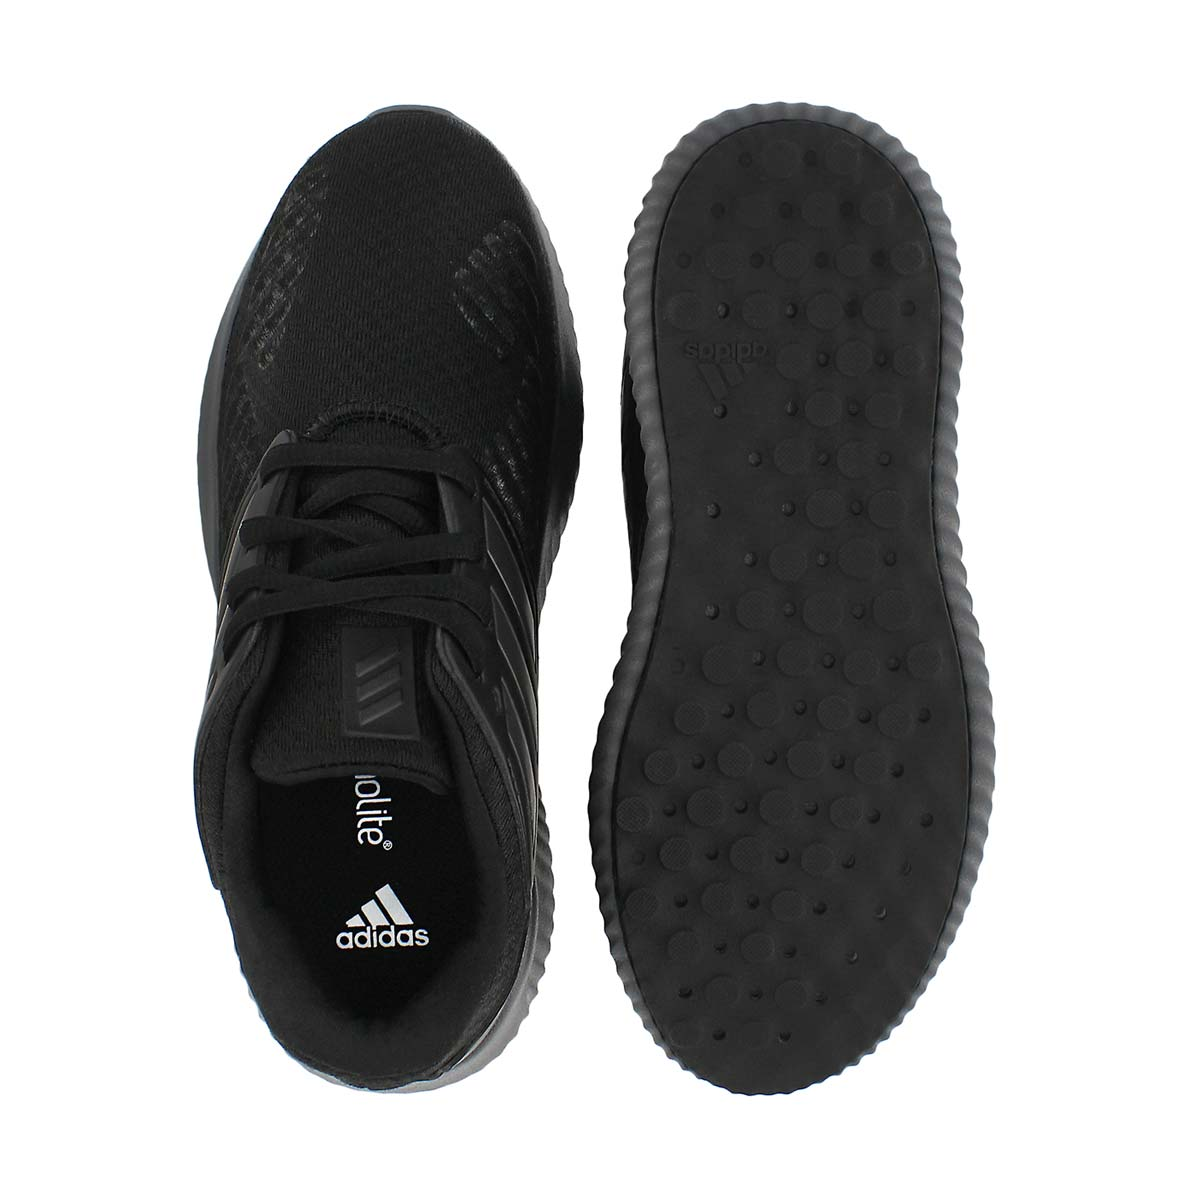 Bys Alphabounce RC xJ blk/gry sneaker